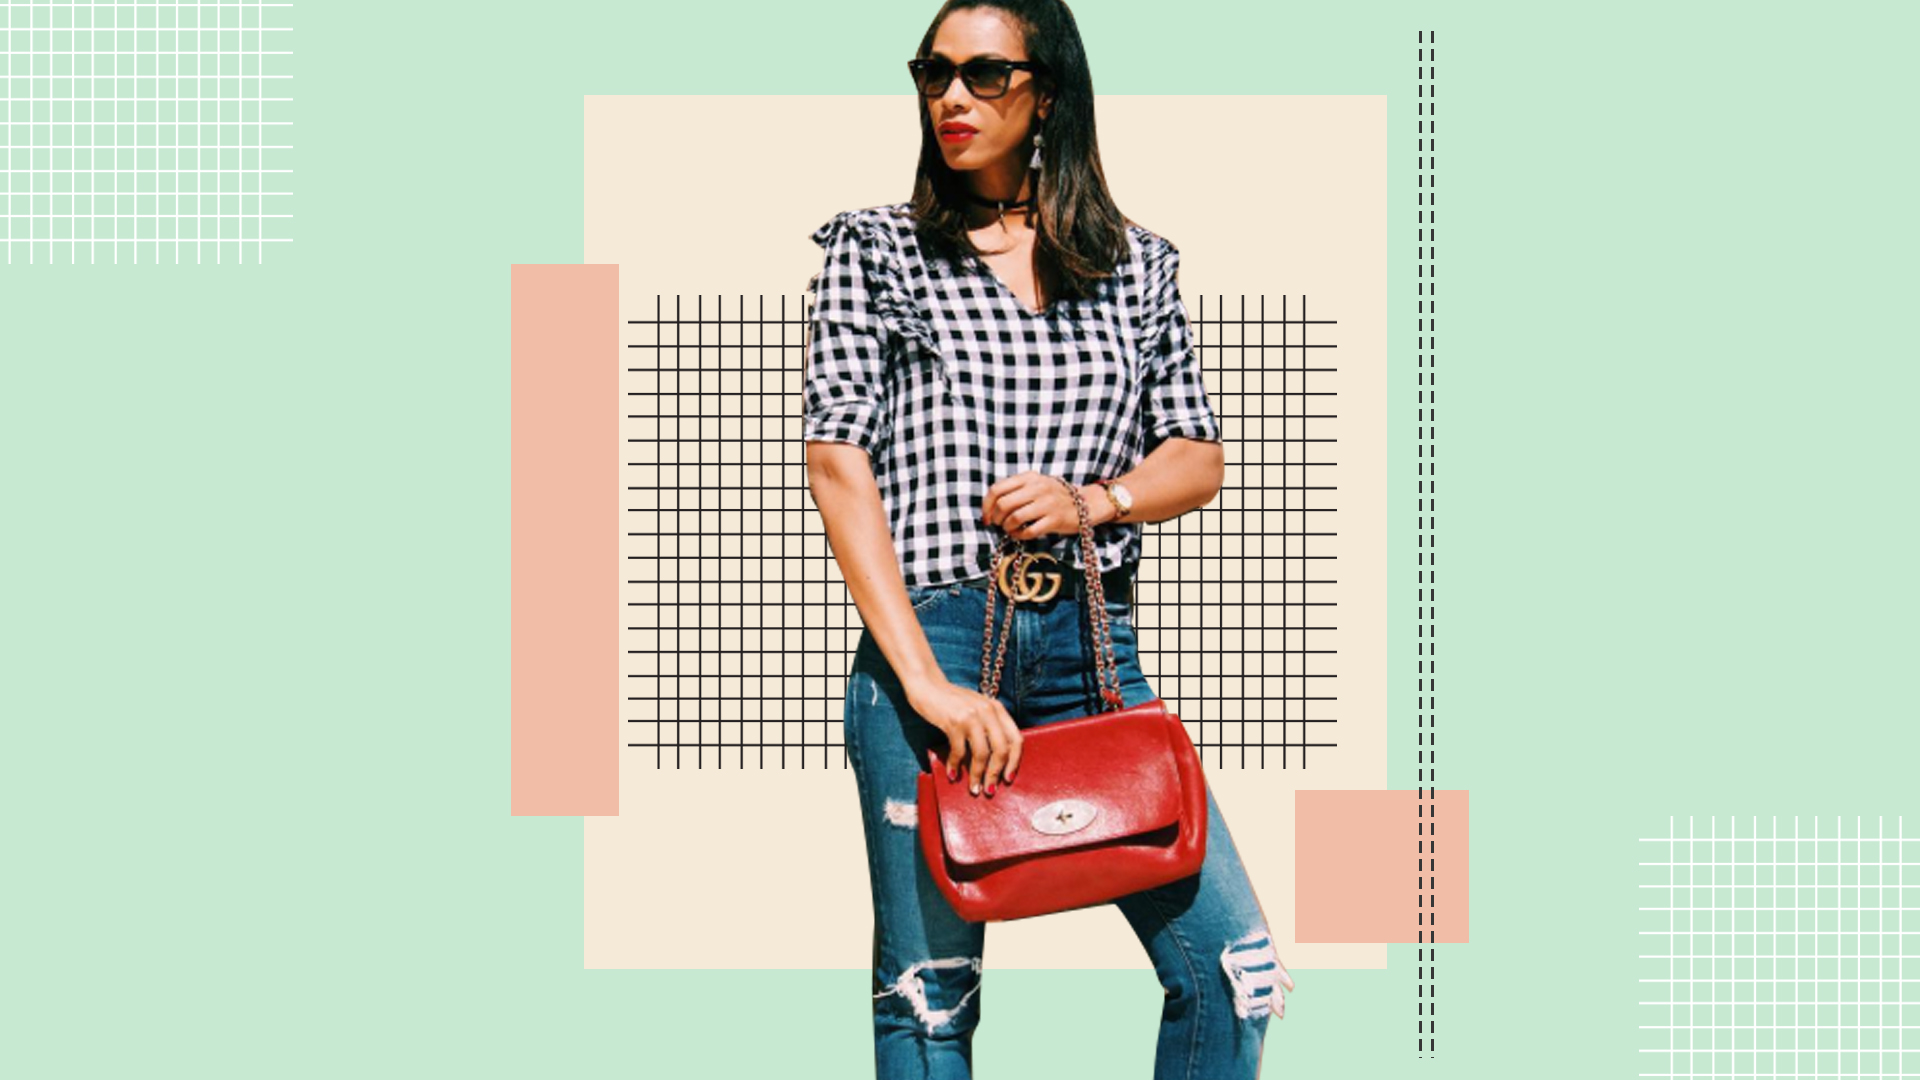 5 Stylish Ways To Incorporate The Checked Shirt Into Your Wardrobe